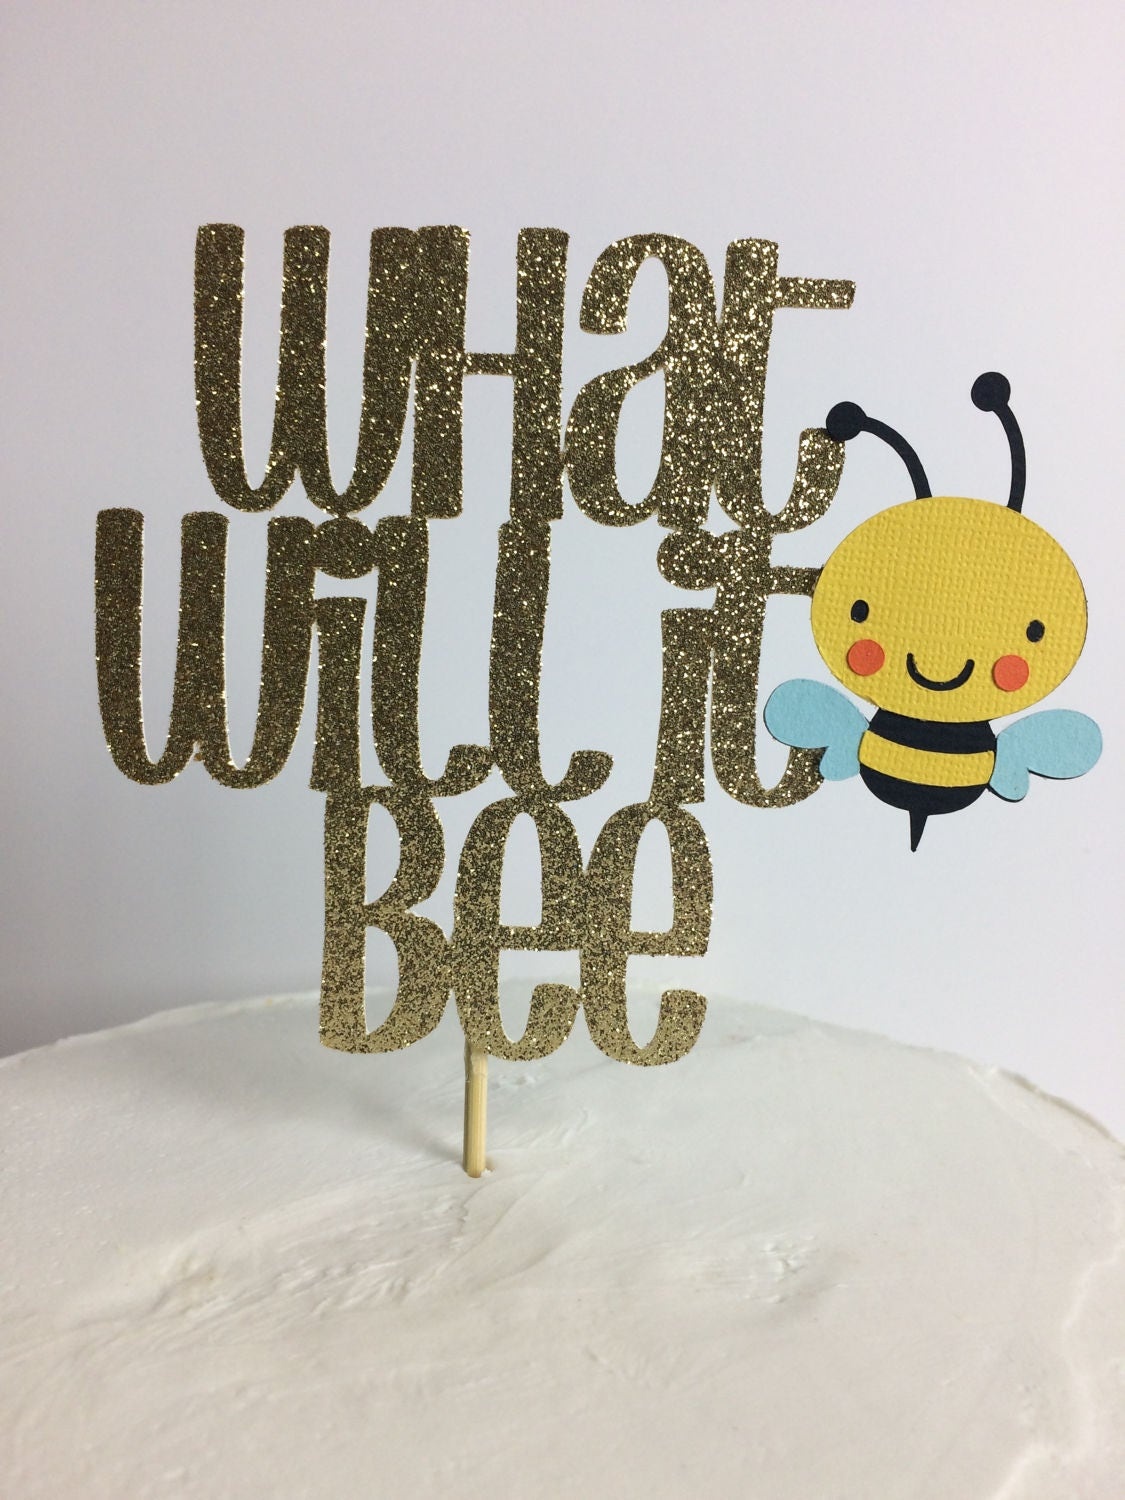 Details This Listing Is For A Handmade Gold Glitter What Will It Bee Cake Topper